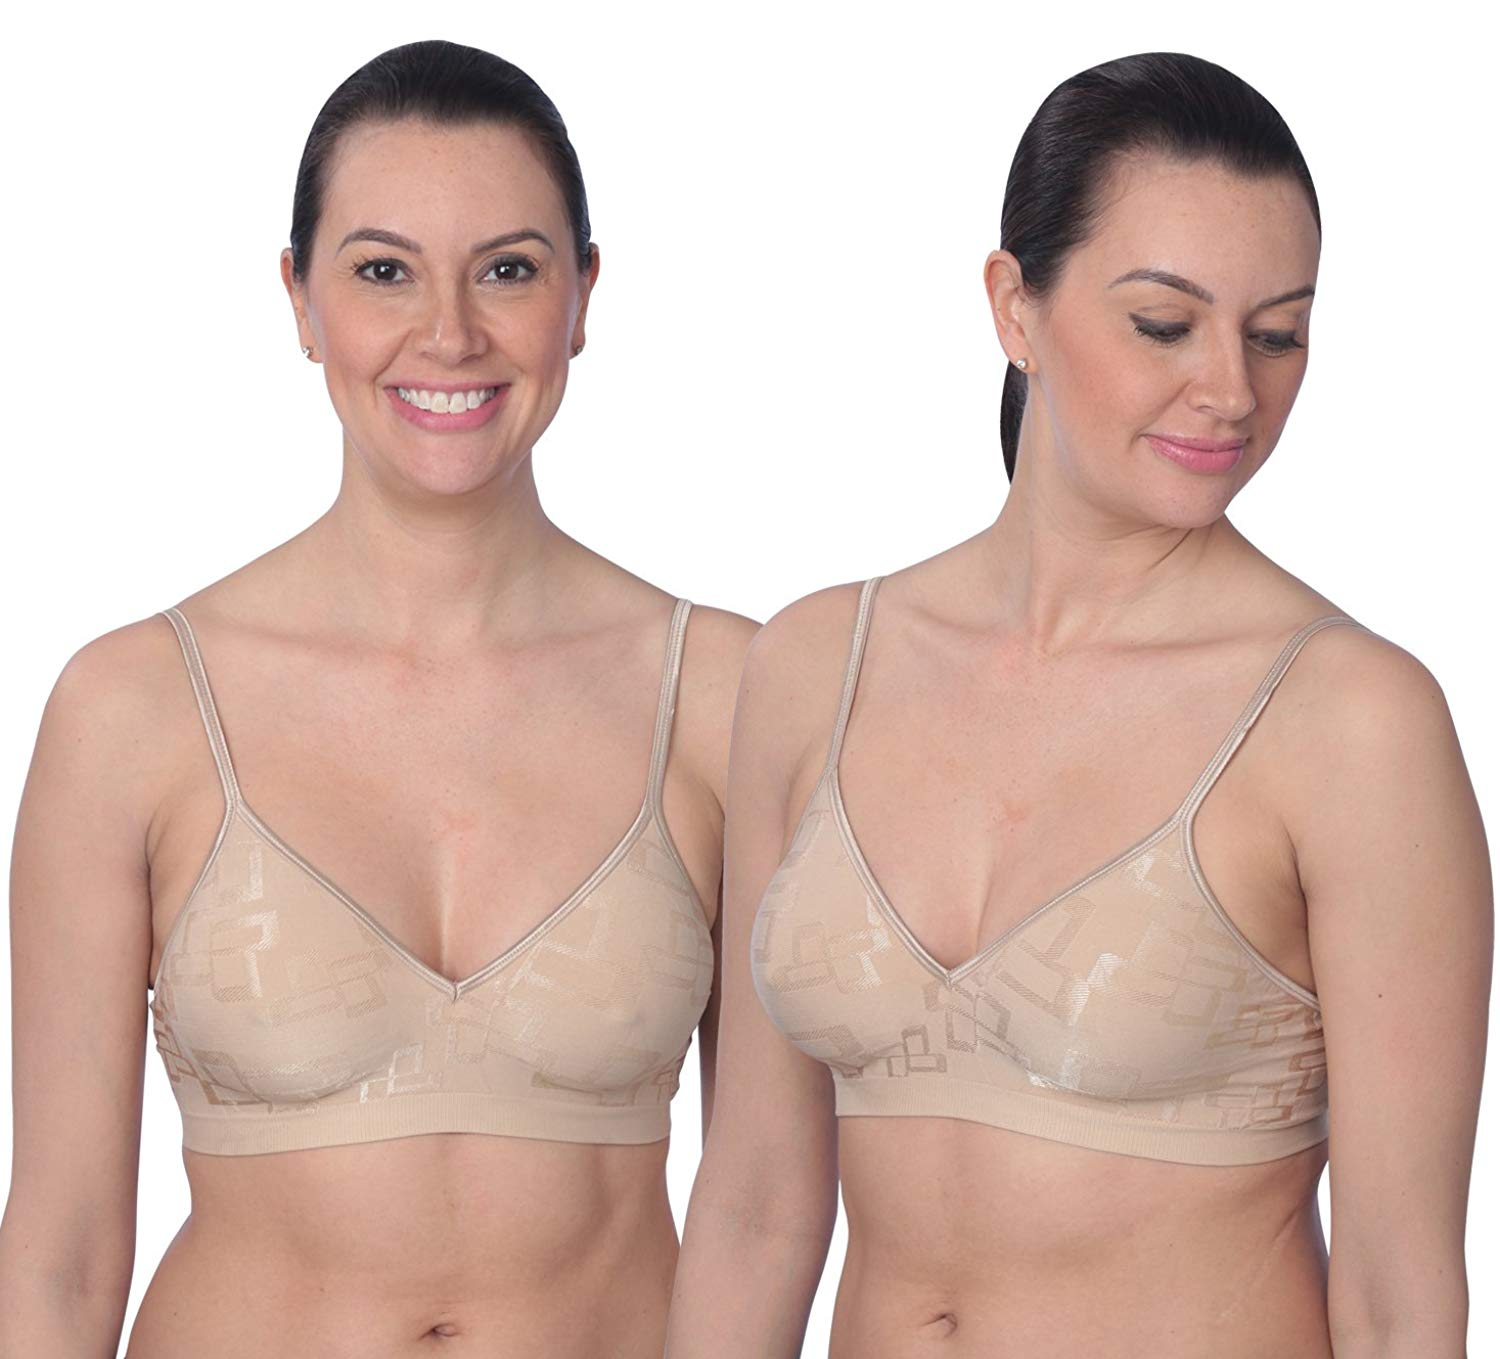 bfaefa8c2f Buy Hanes Comfortflex Fit Santoni Bra with Corsetry Detail-1 or 2 ...